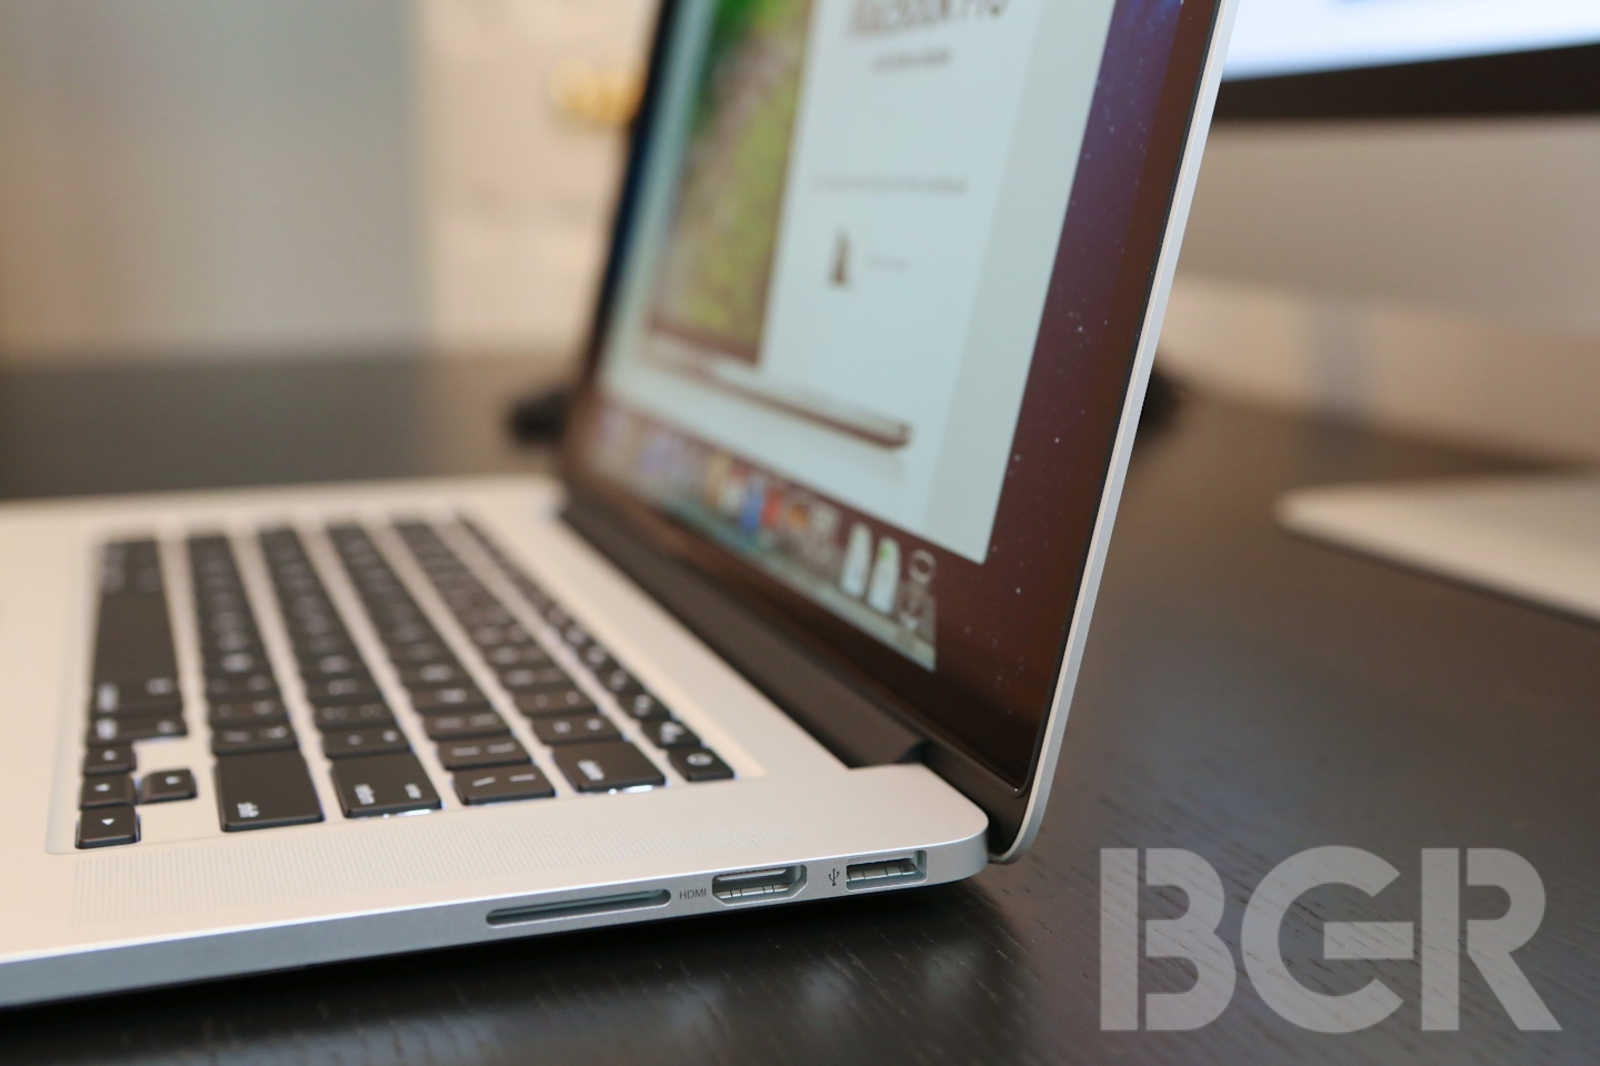 Apple MacBook Shipments Q3 2013